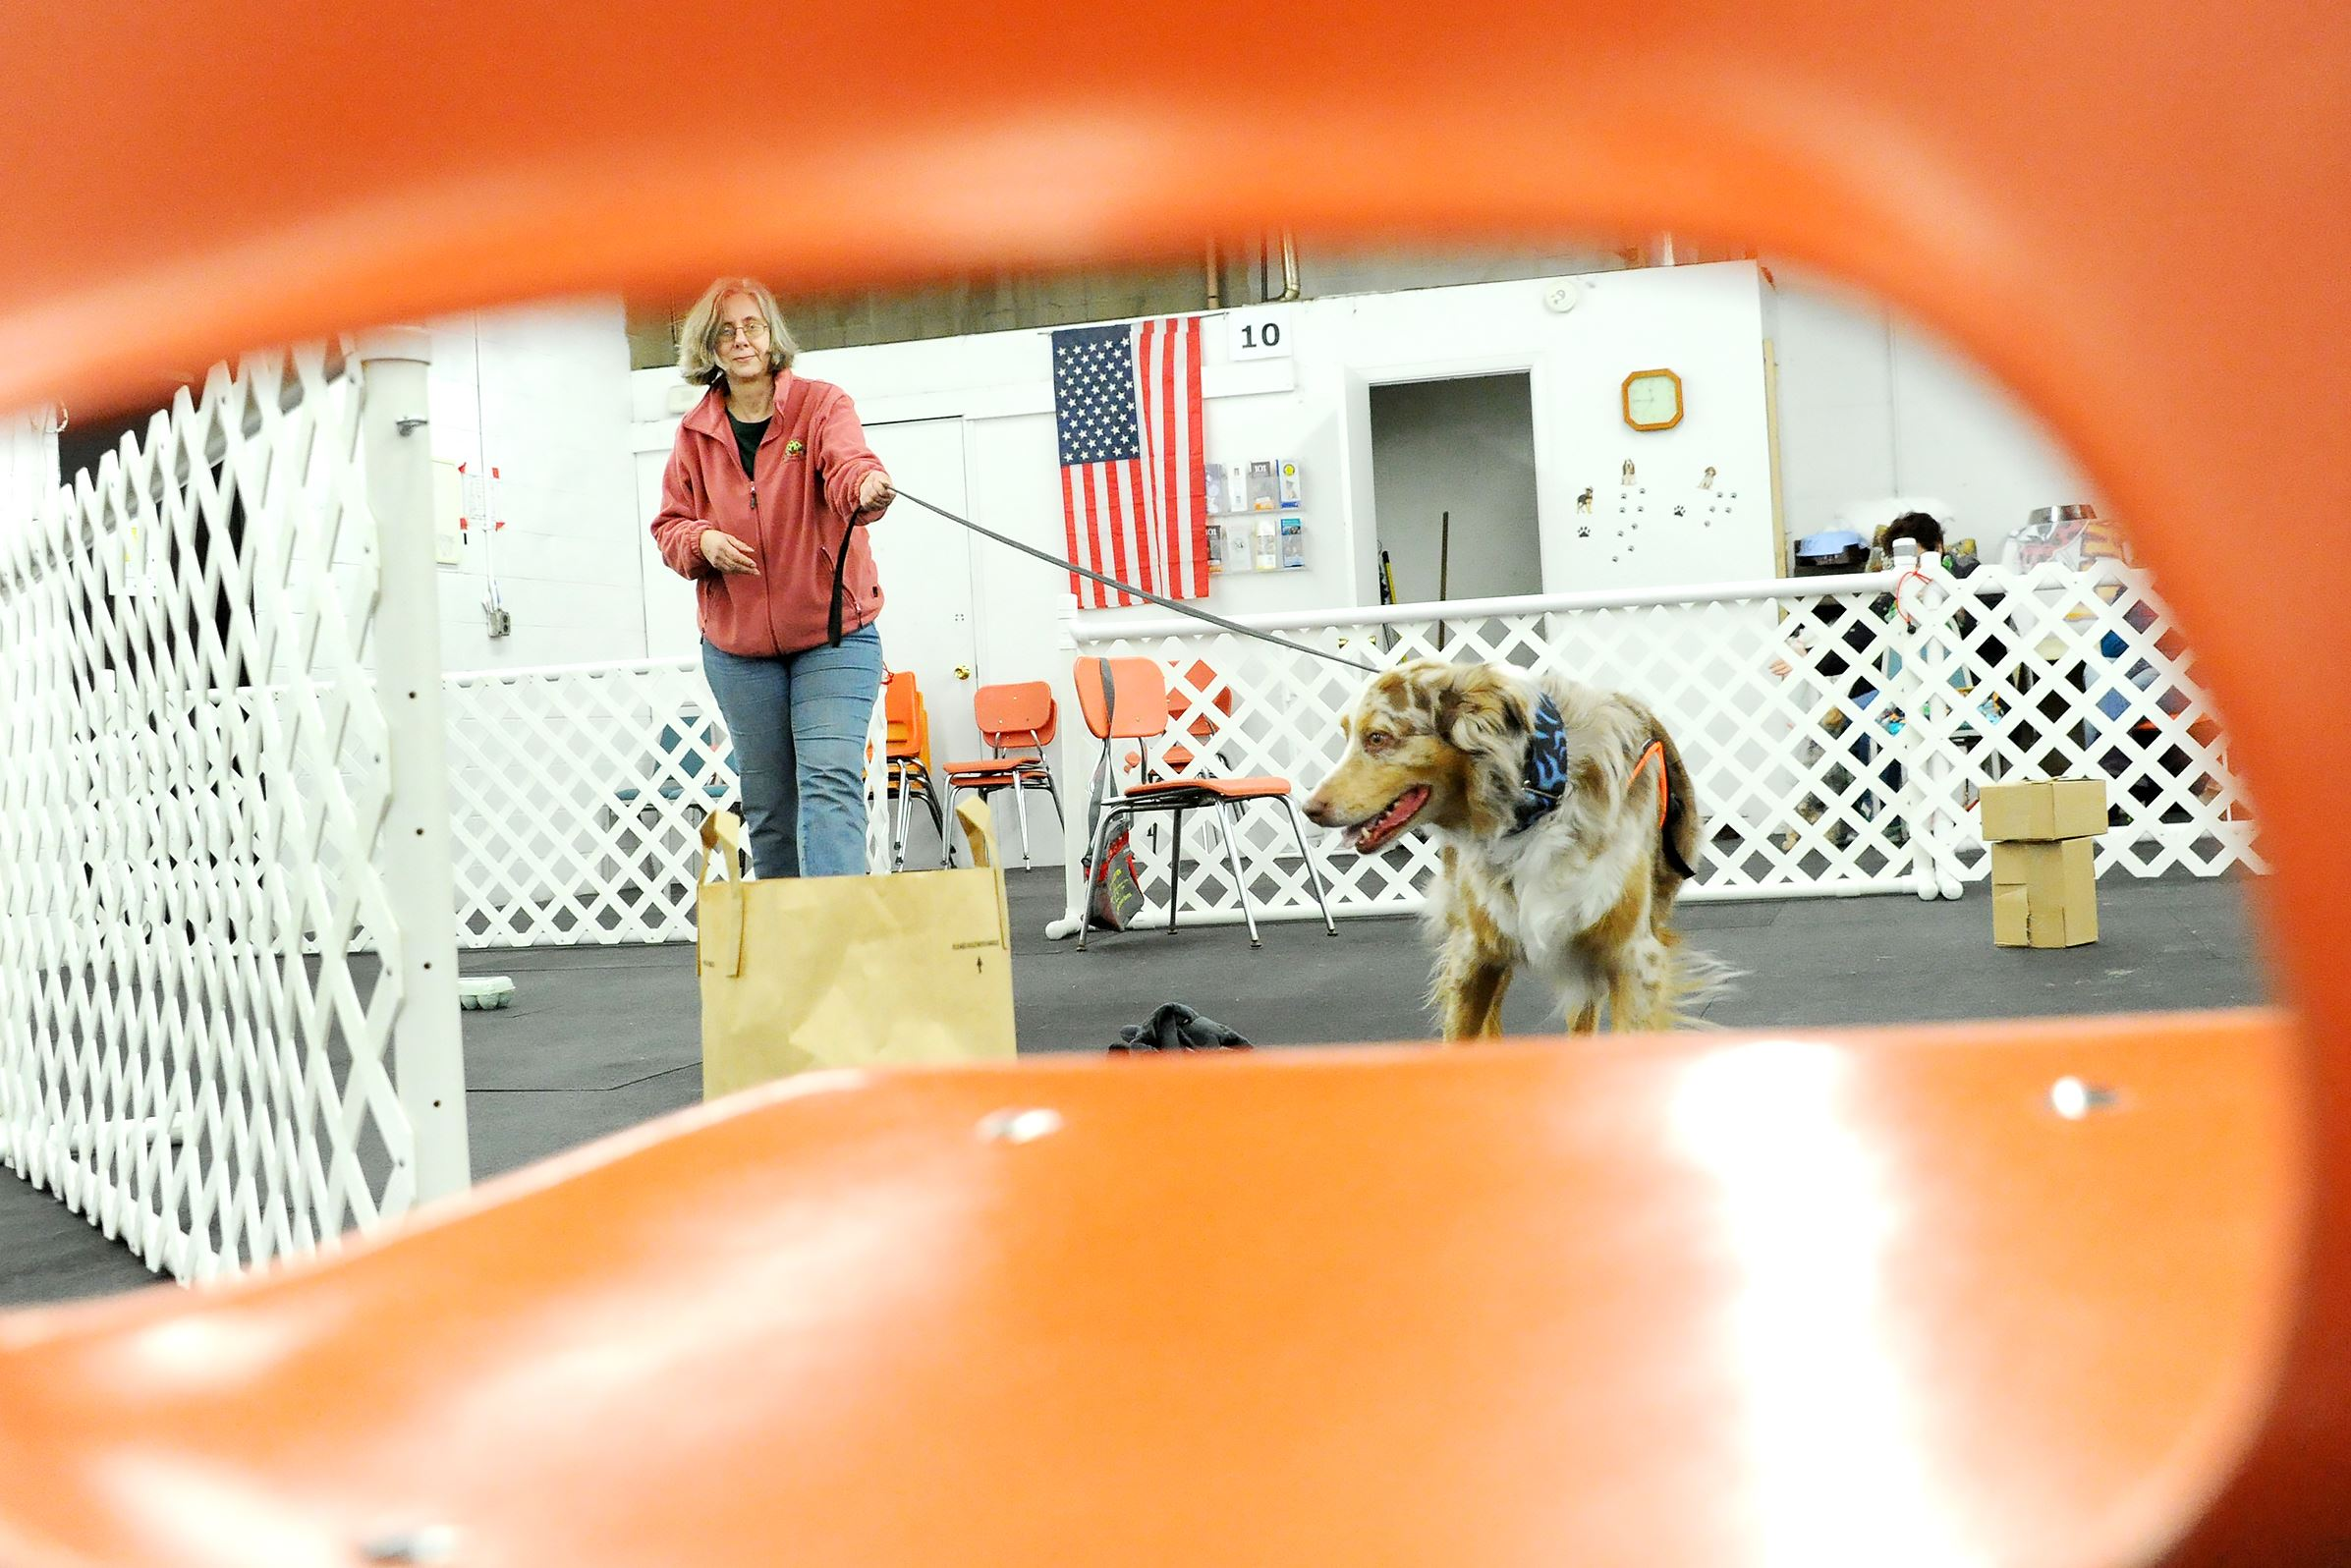 20170317lf-Dog05-4 Trainer Maribeth Hook leads Kobi, her 8-year-old Australian shepherd, in the nose work class at Keystone Canine Training Club .